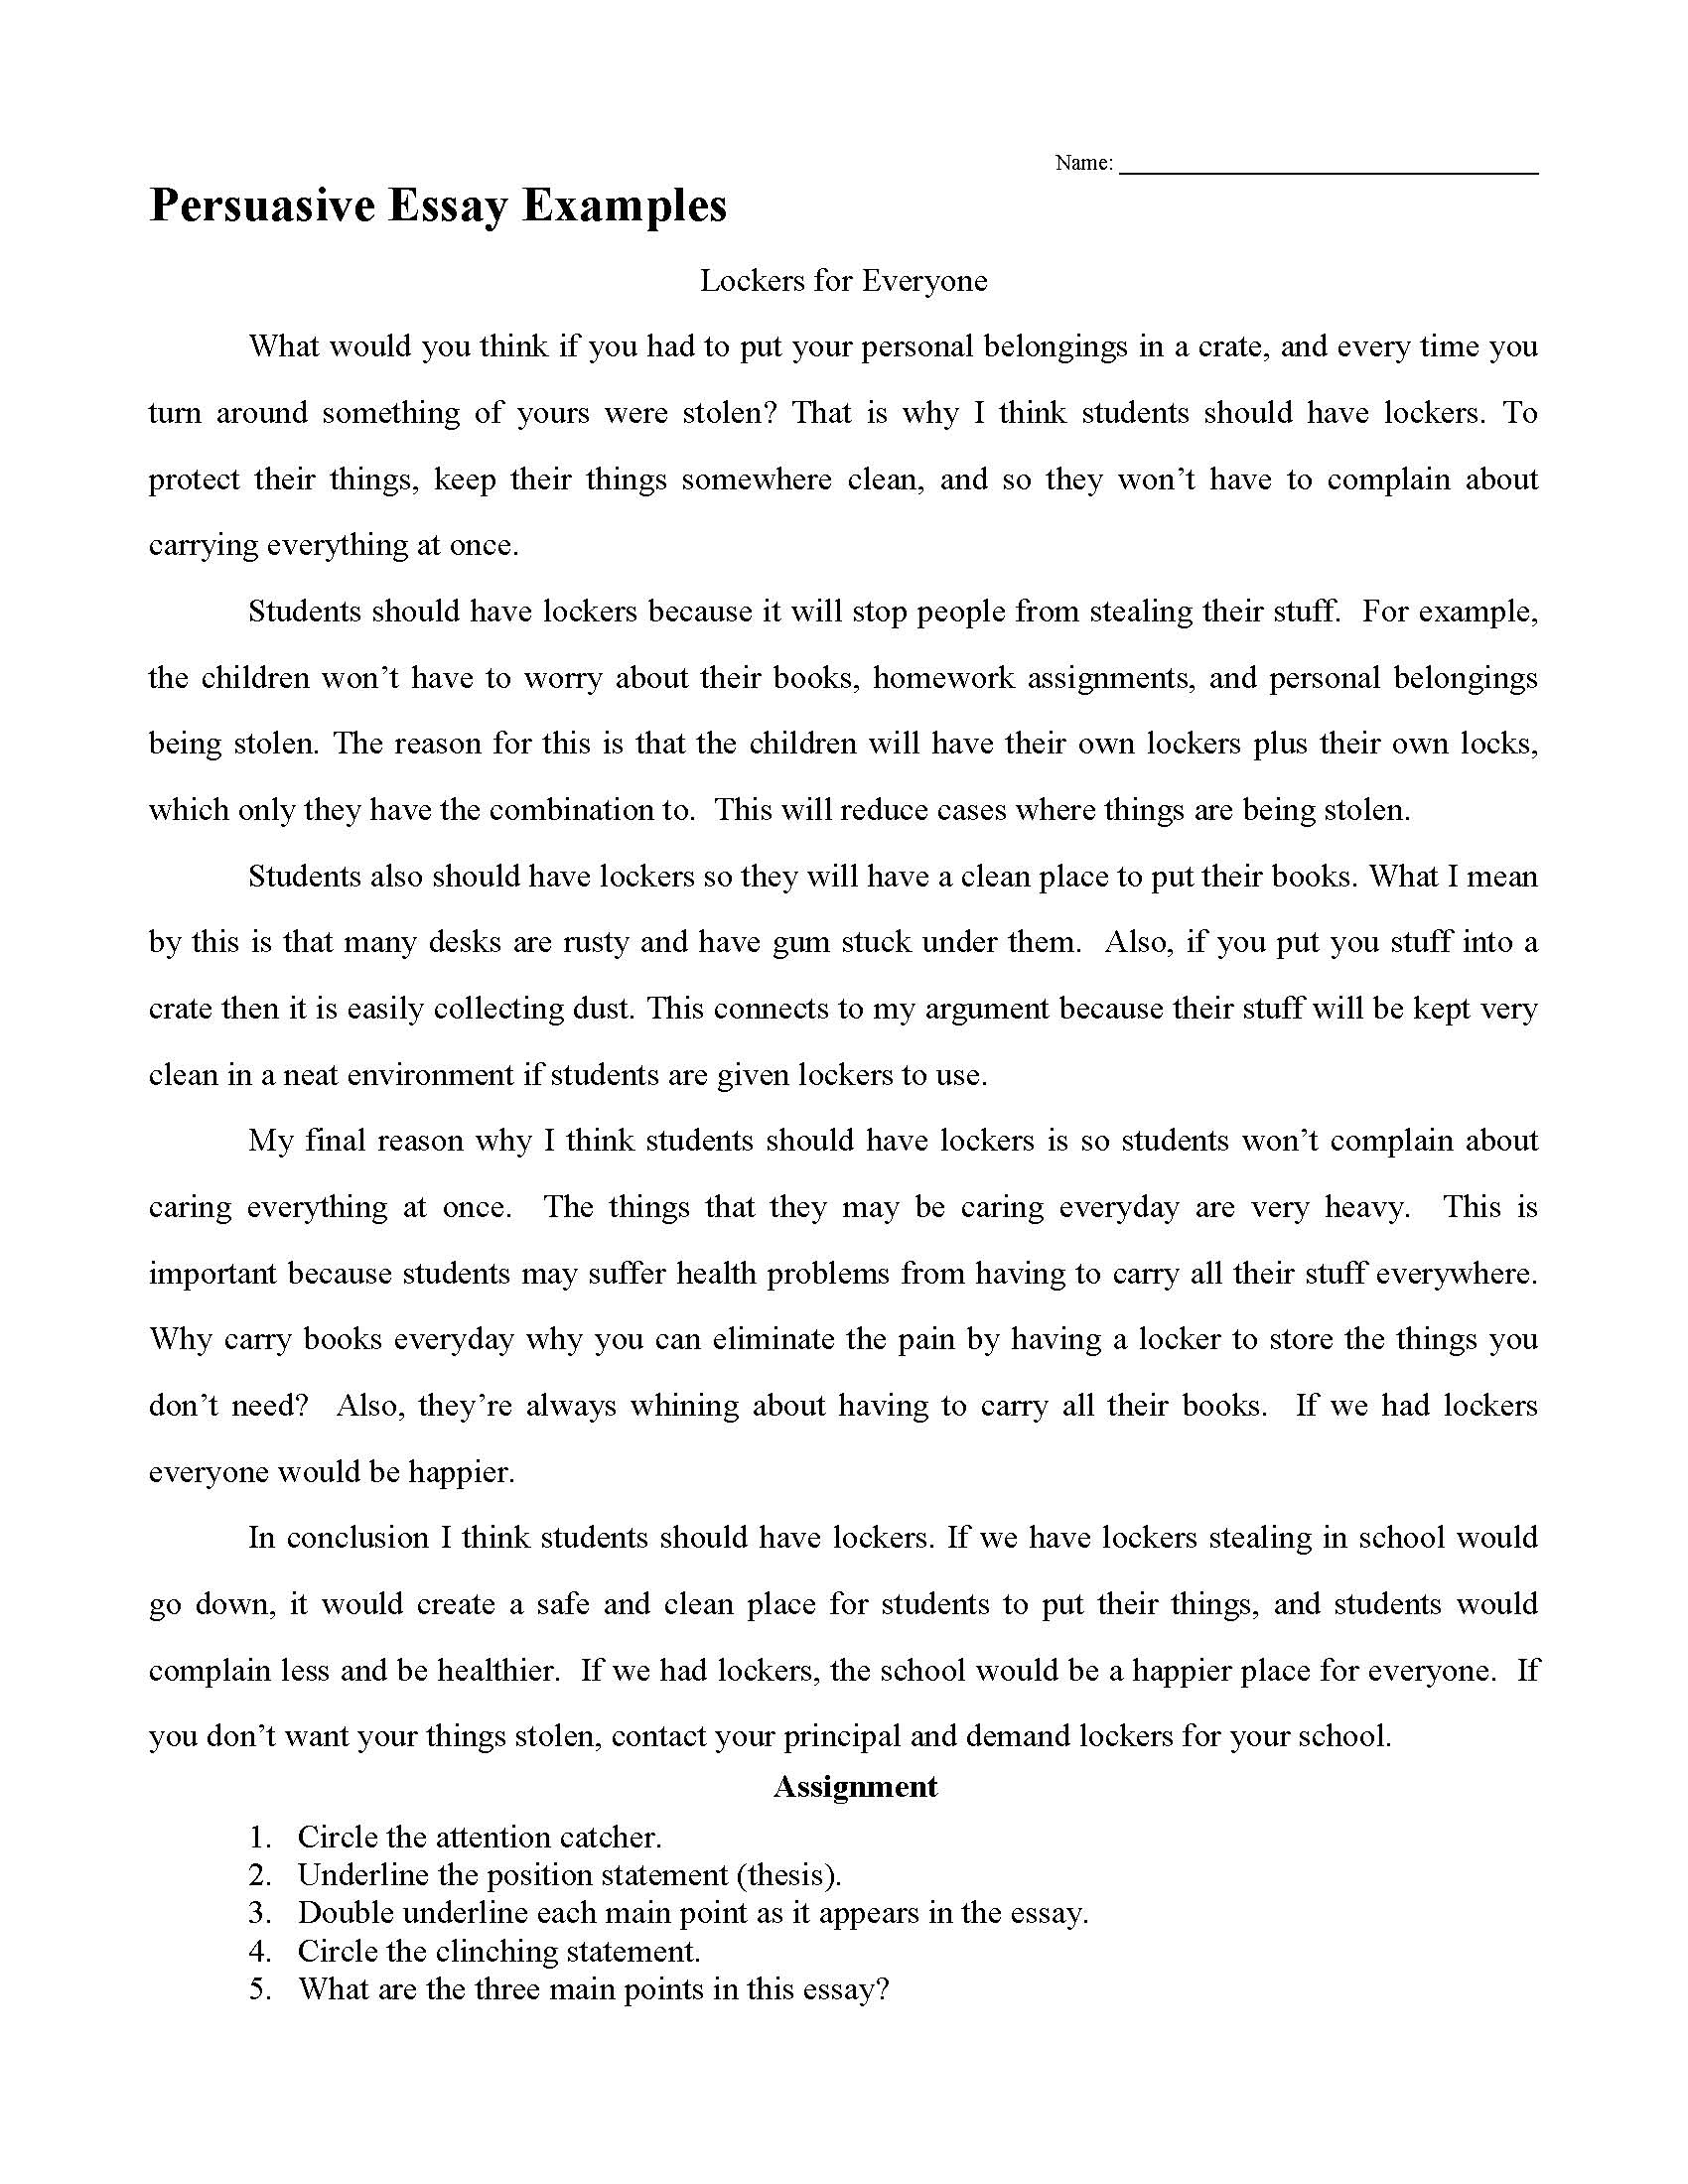 023 Persuasive Essay Example High School Examples Frightening Short Sample Essays For Students Full